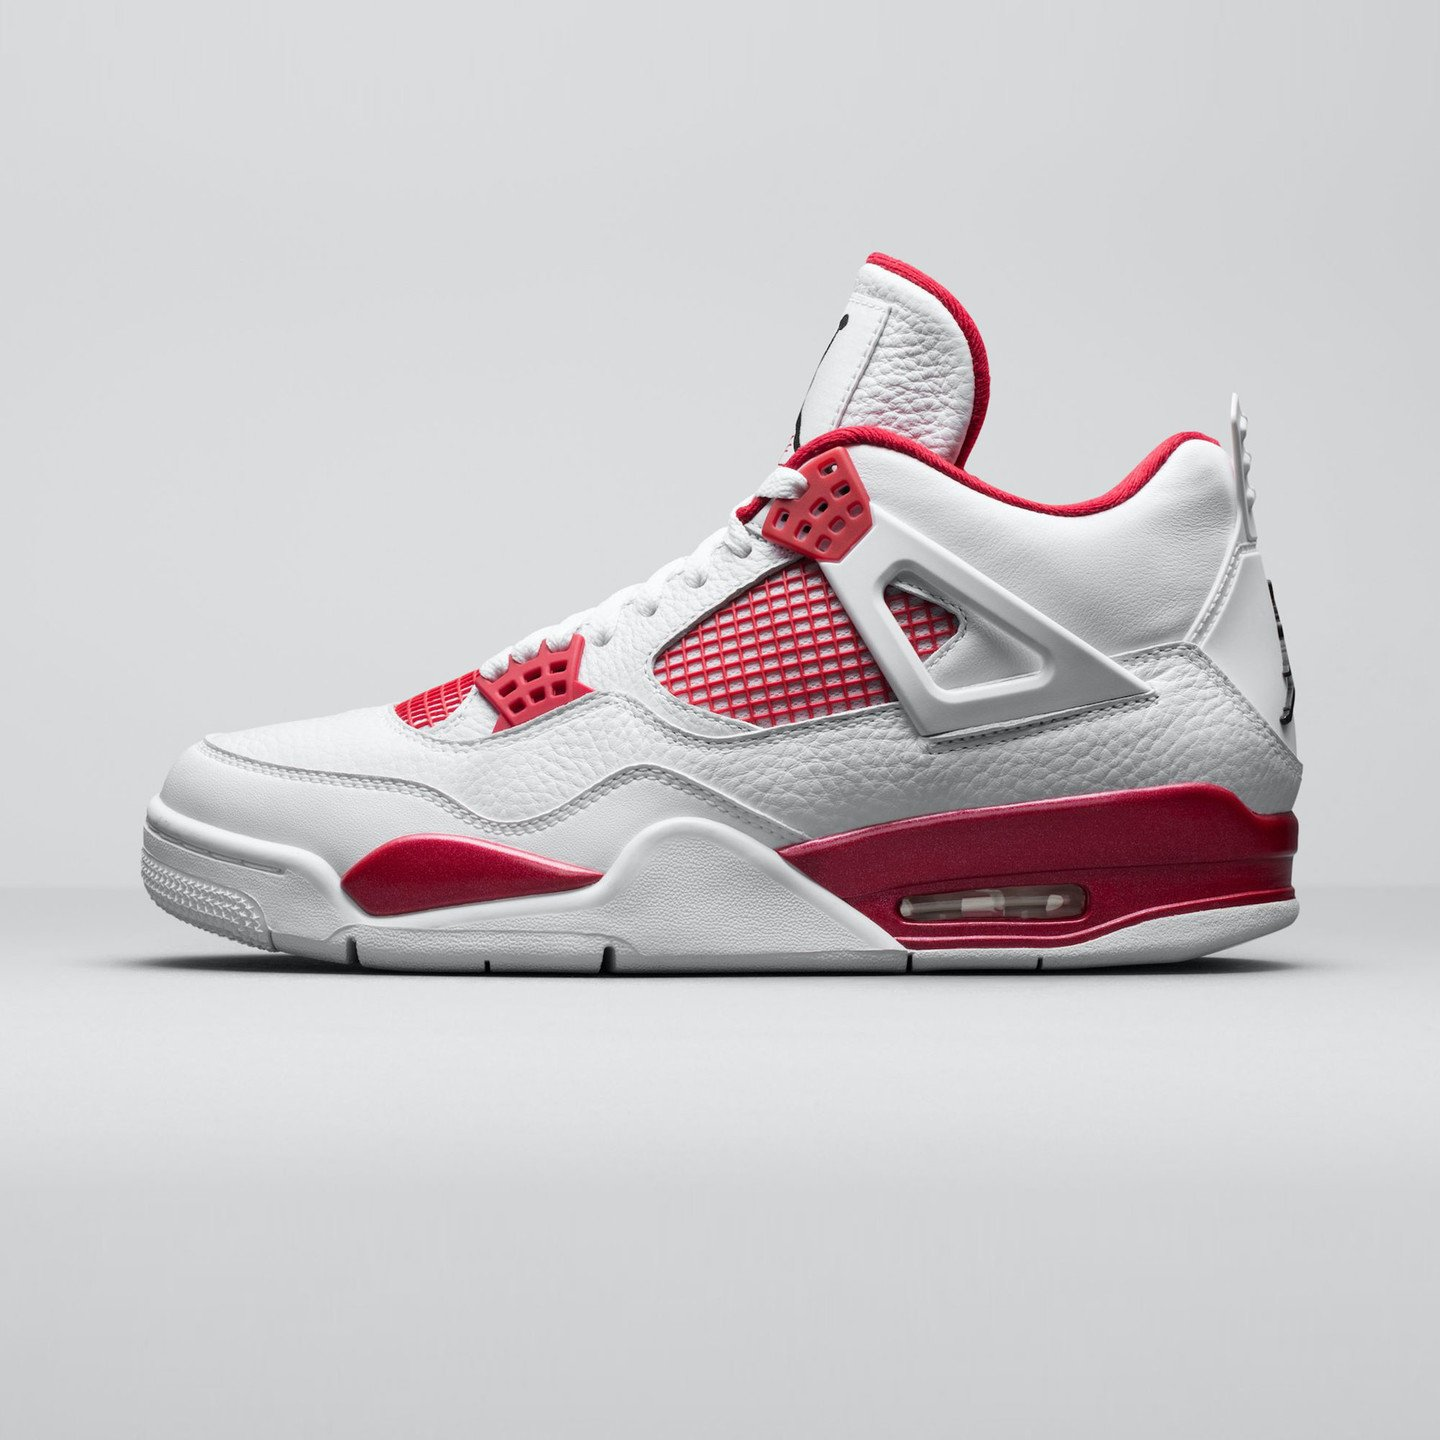 Jordan Air Jordan 4 Retro Alternate White / Gym Red / Black 308497-106-43